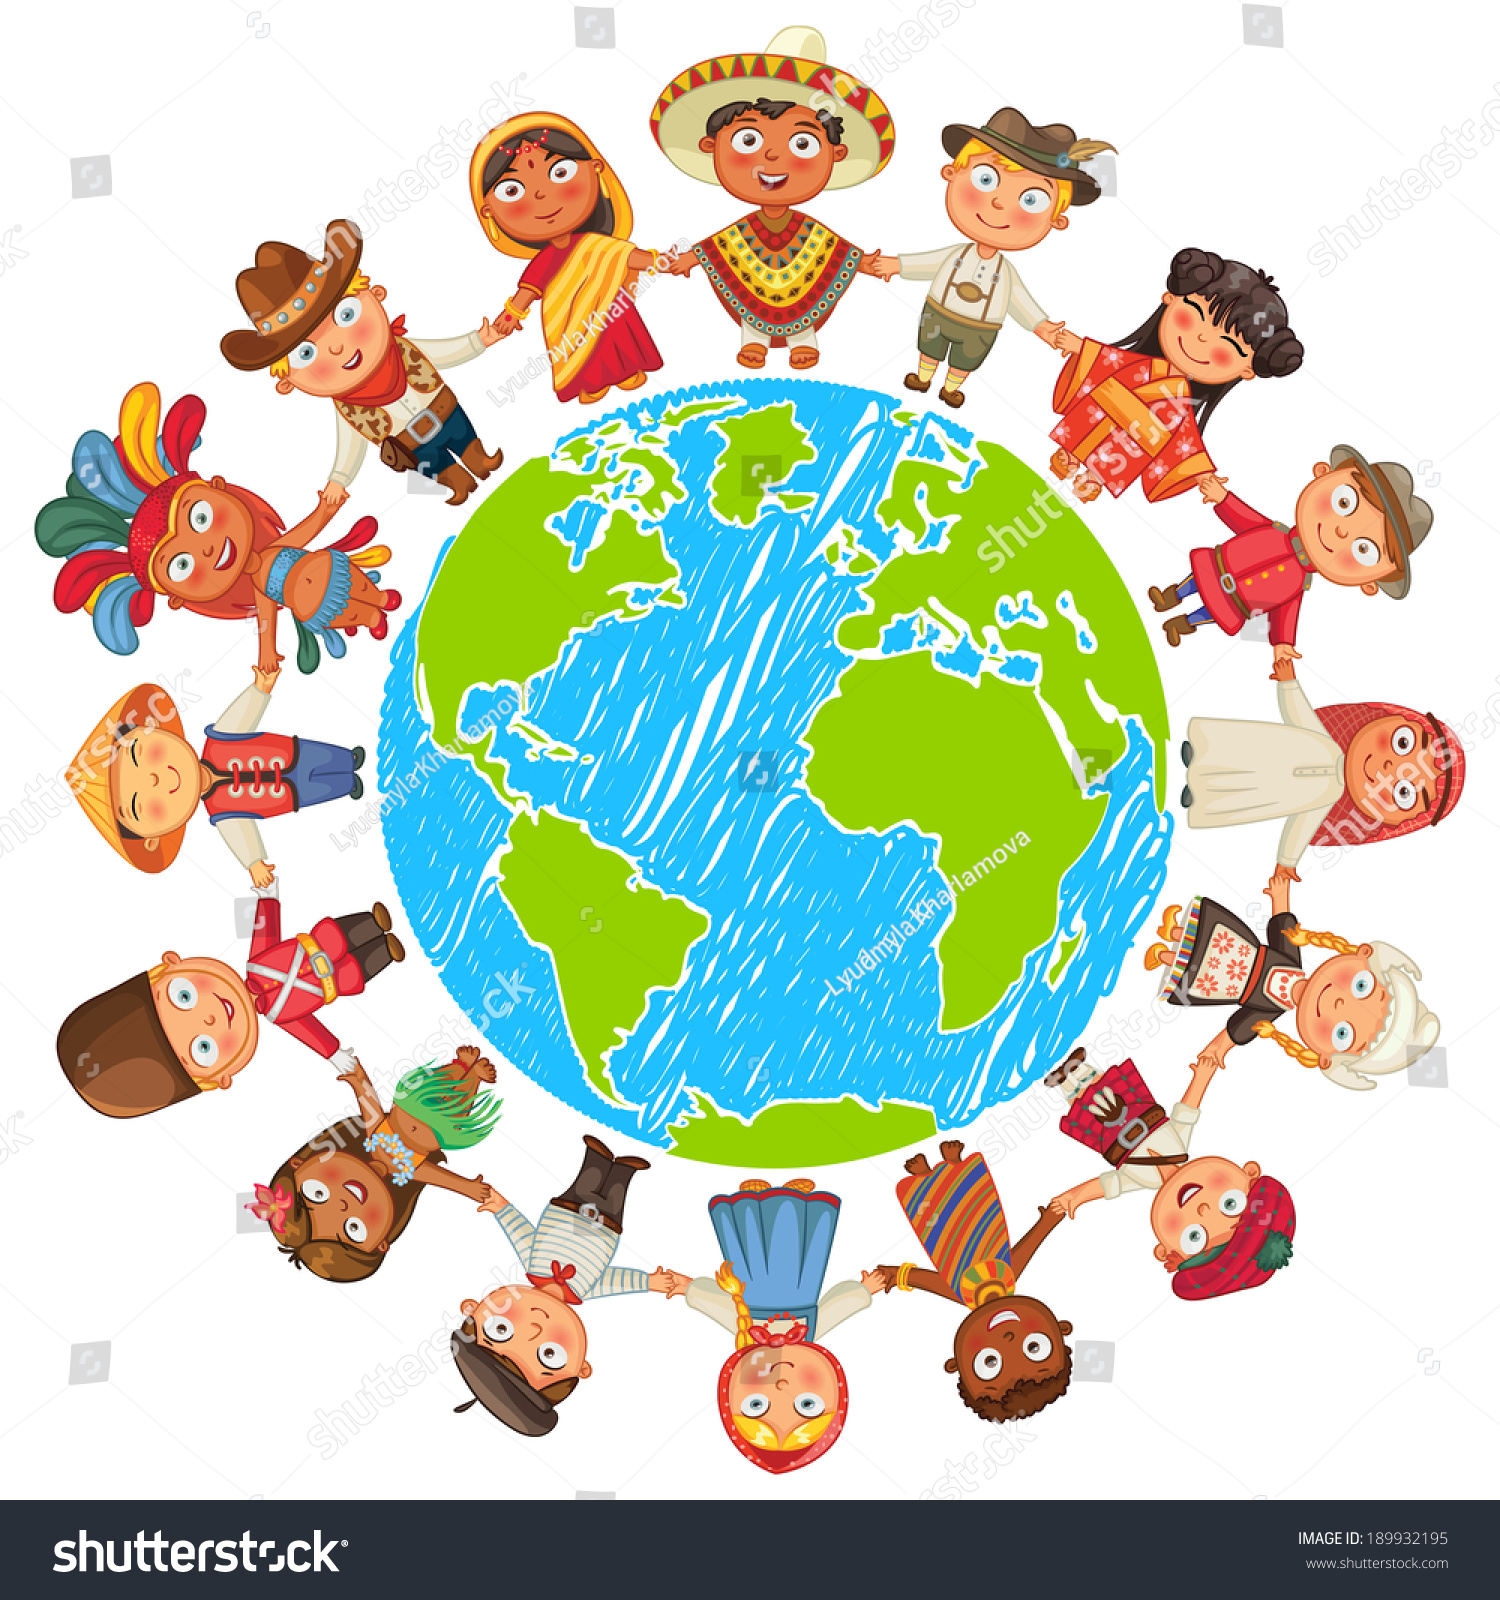 nationalities different culture standing together holding の